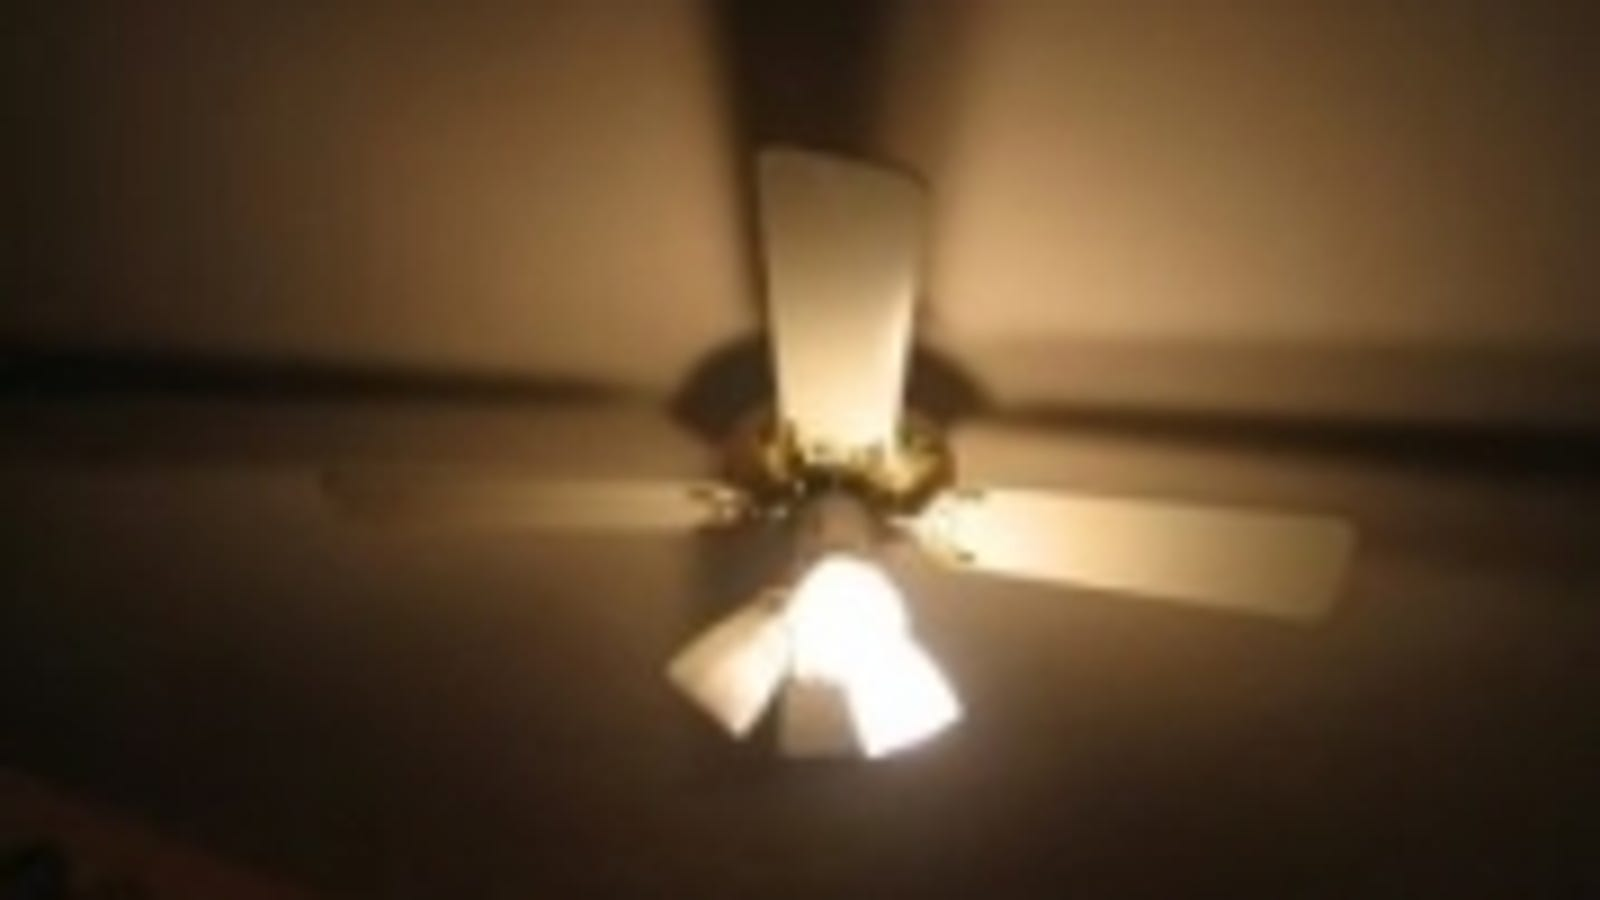 Run ceiling fans counter clockwise for summer savings mozeypictures Gallery